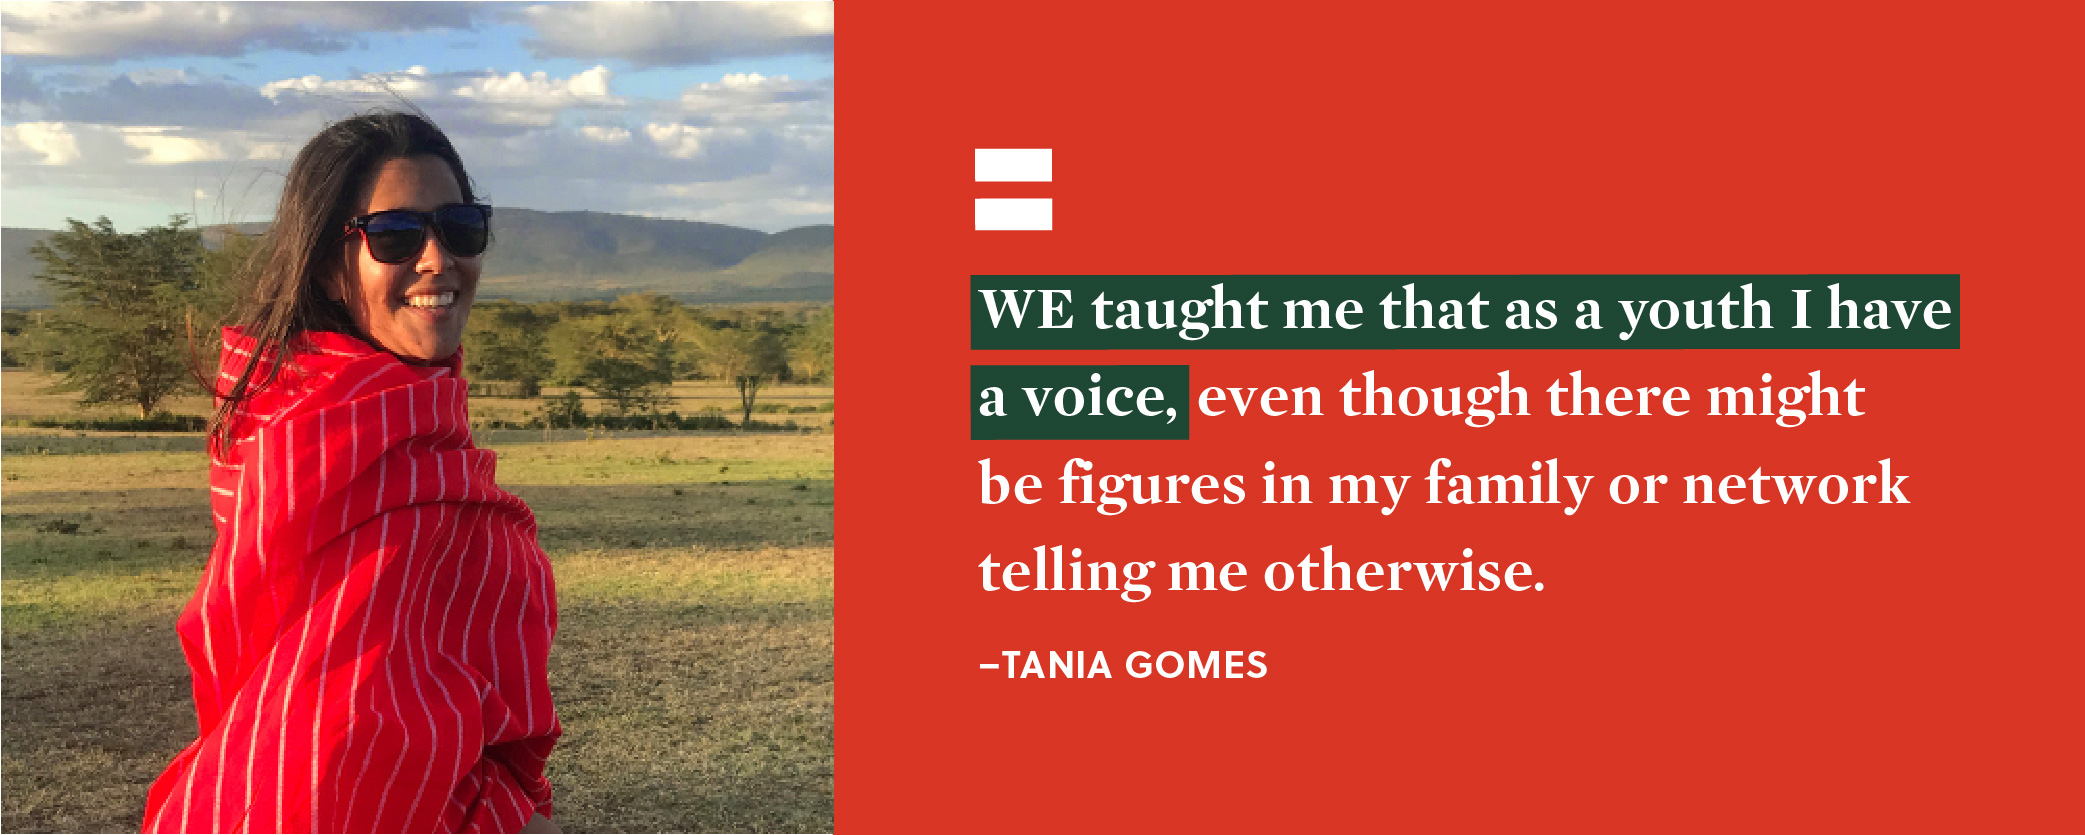 Quote. WE taught me that as a youth I have a voice, even though there might be figures in my family or network telling me otherwise. Unquote. Tania Gomes.